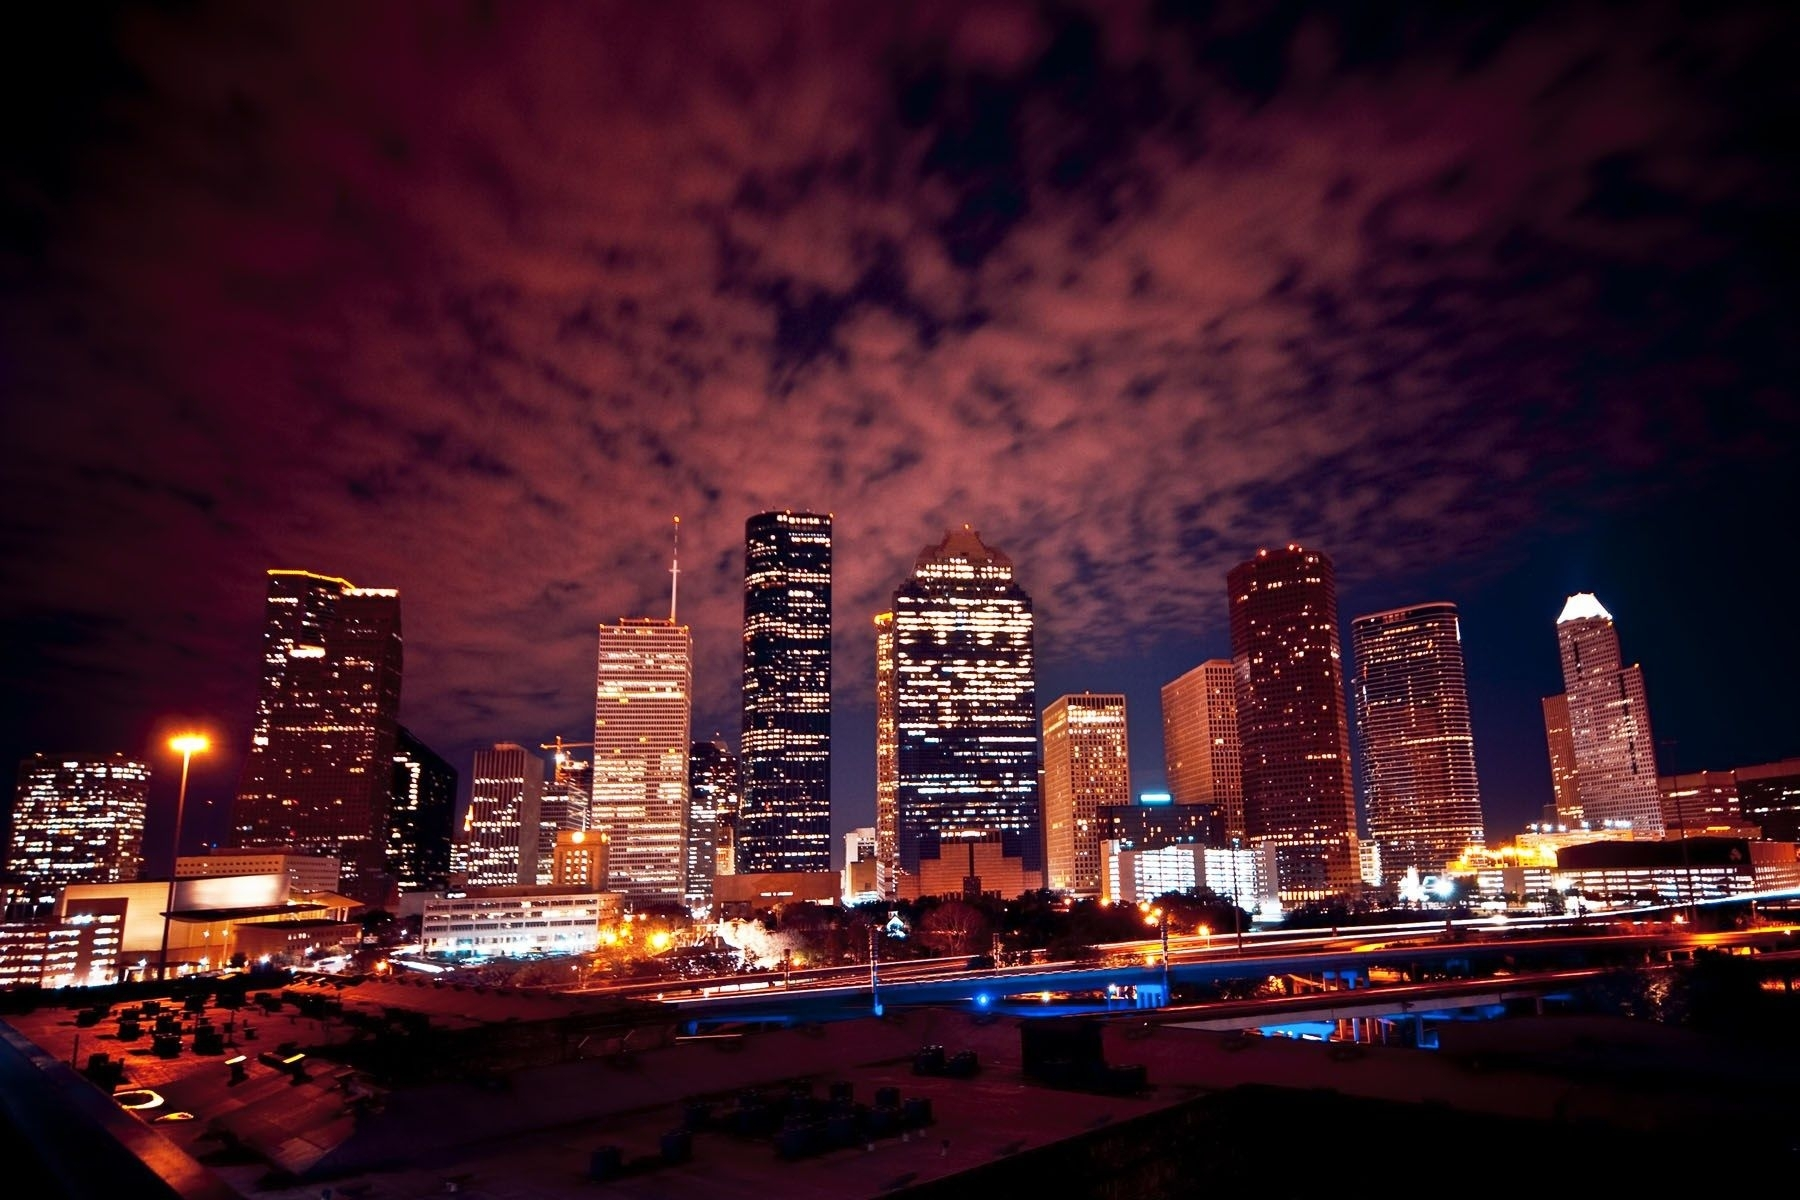 night houston skyline wallpaper | sharovarka | pinterest | houston